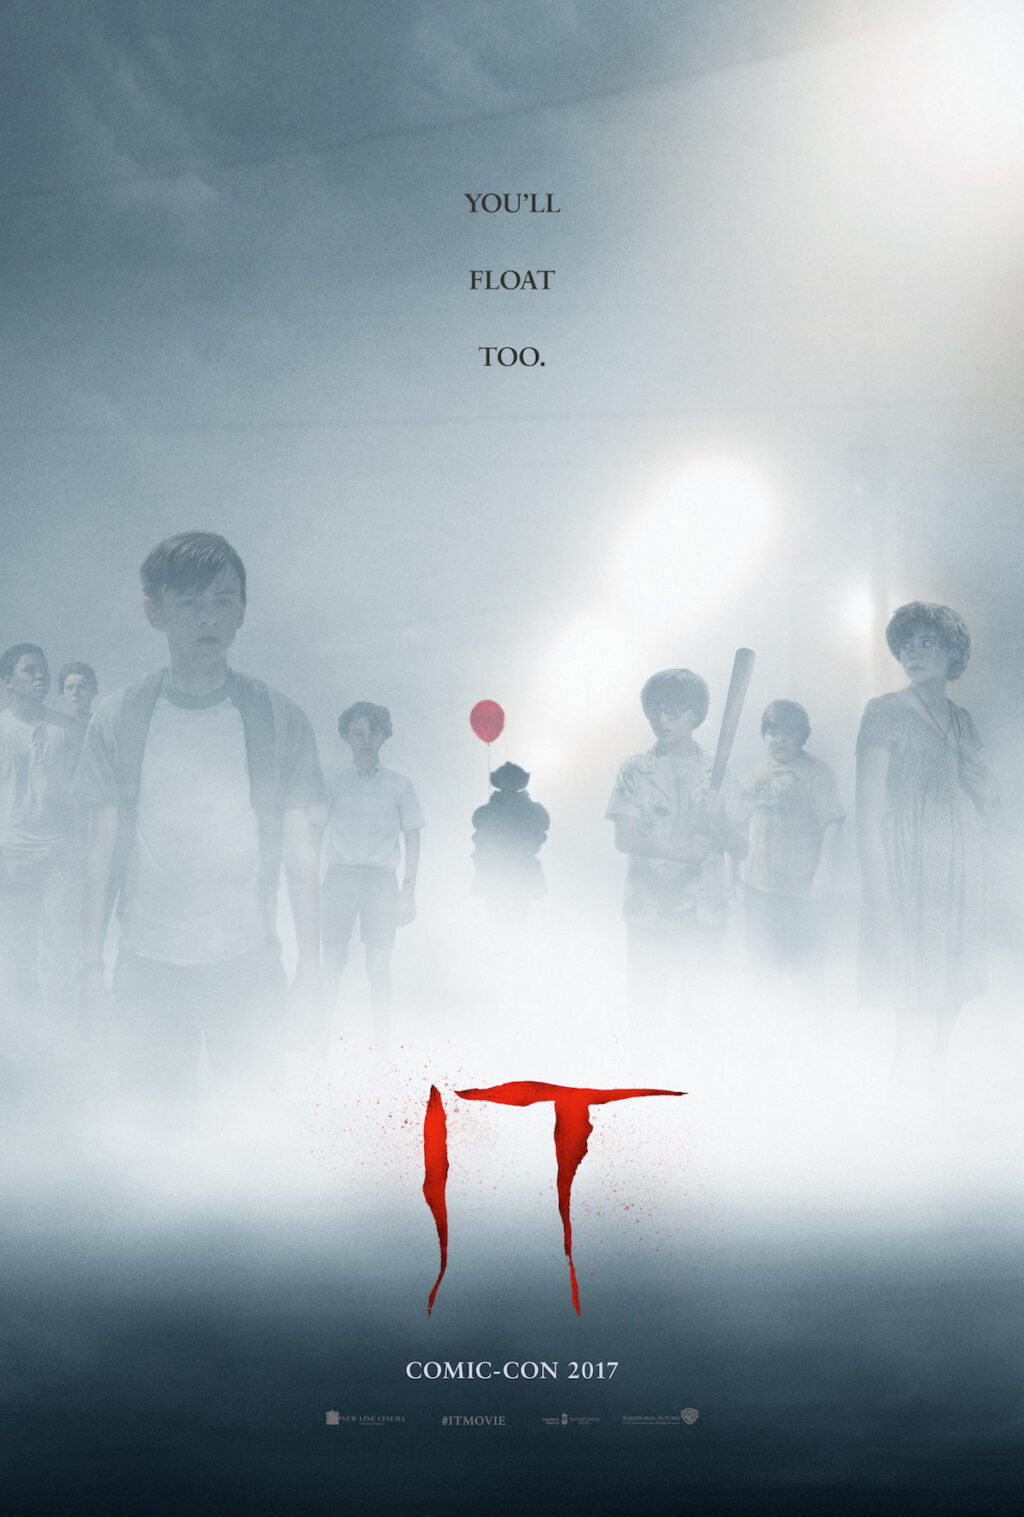 itcomicconposter 1024x1517 - Exclusive: We Visited the Set of IT and Here's What We Saw!